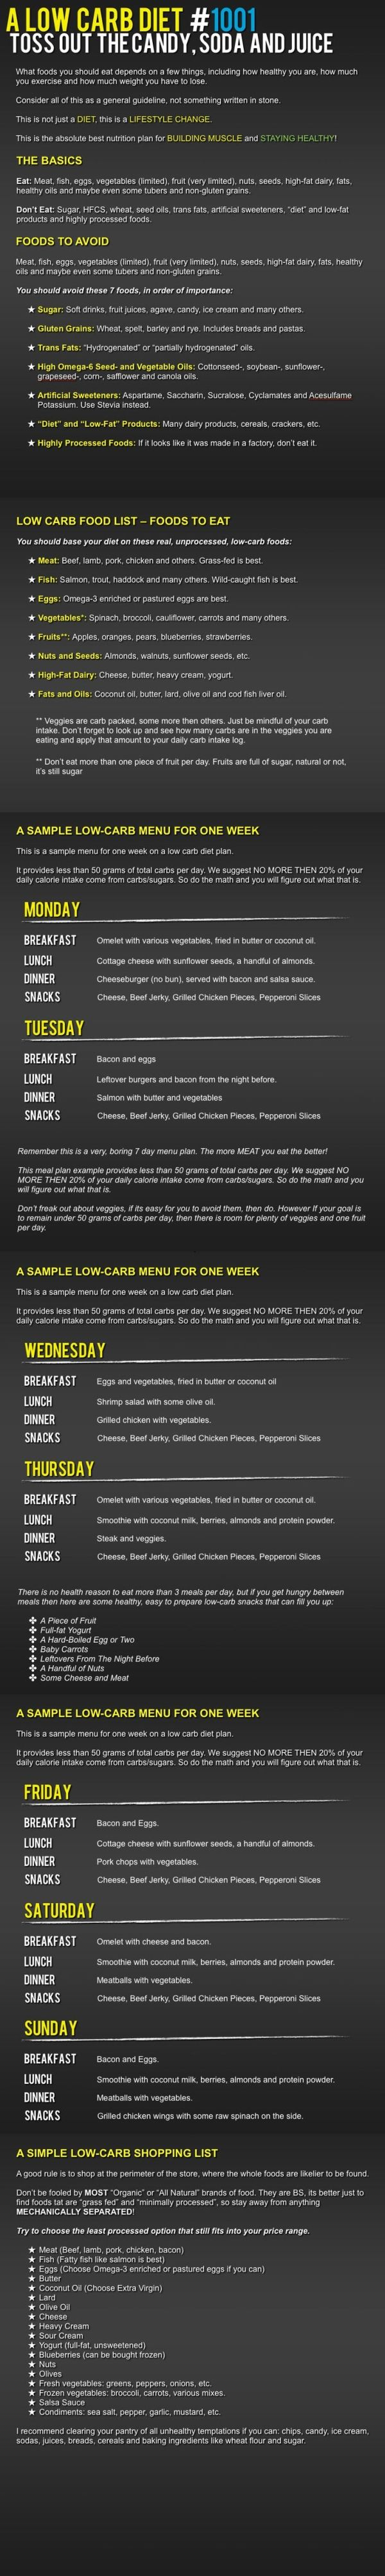 Here is a great graphic for those who like low carb diet. (includes a food list and simple meal plan) by CheechtheAwesome